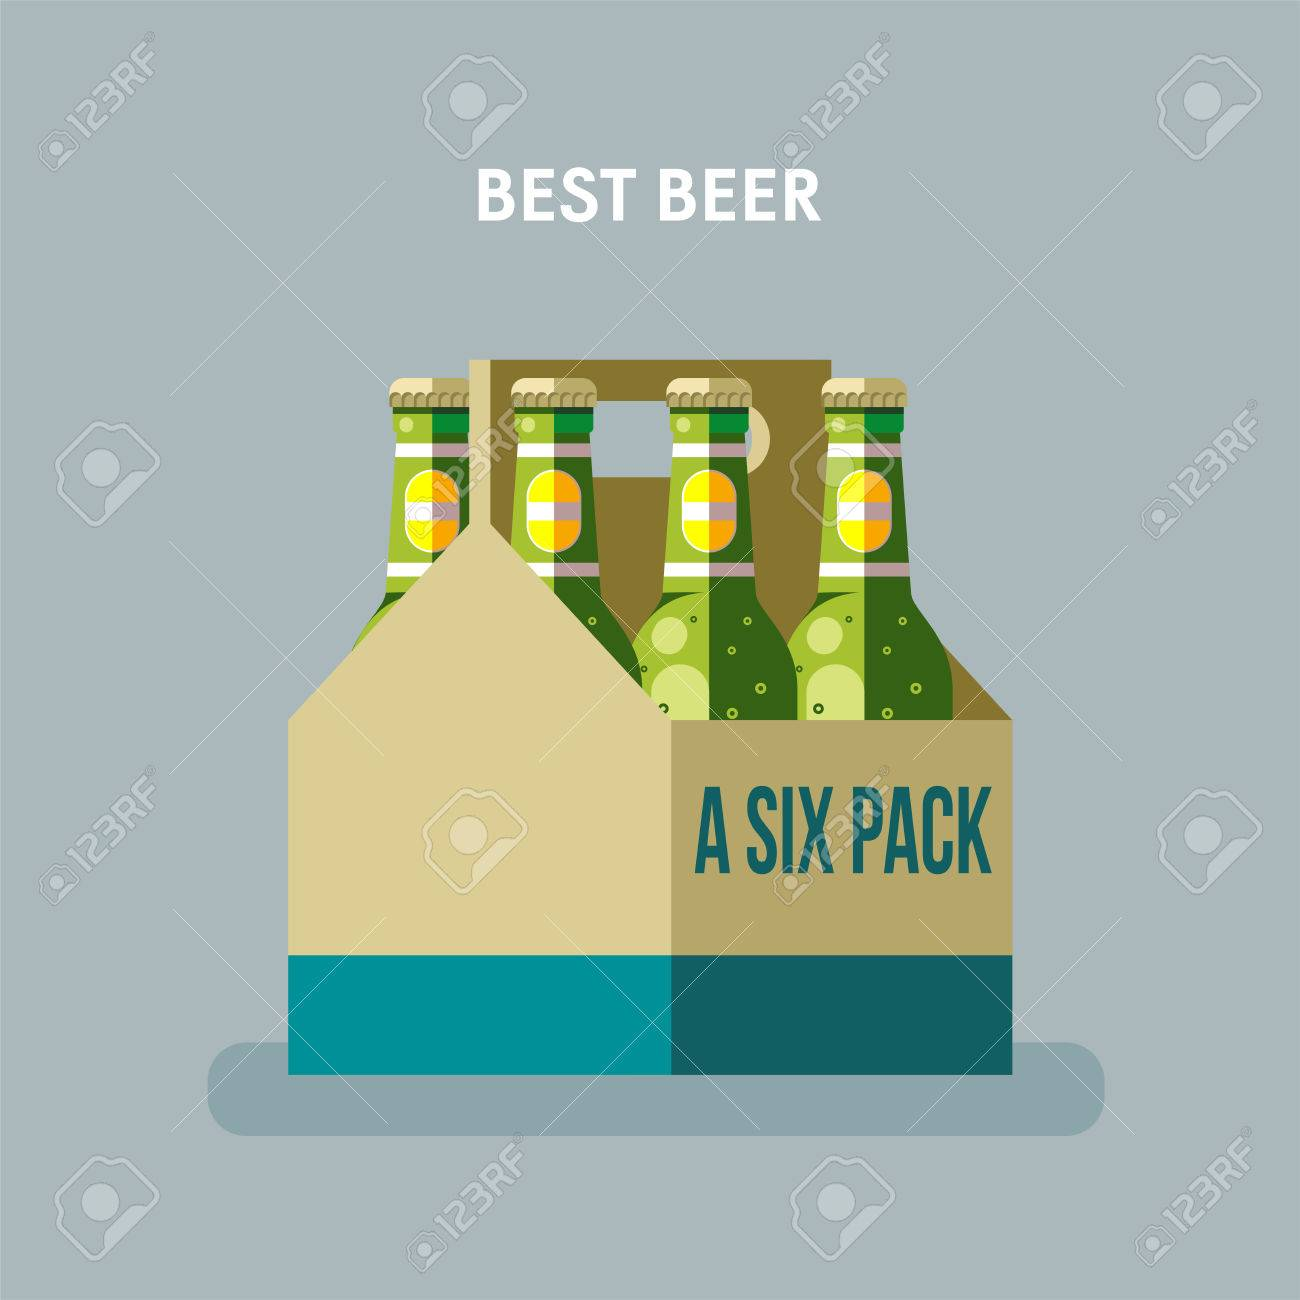 Beer Bottles A Six Pack Royalty Free Cliparts Vectors And Stock Illustration Image 84168434